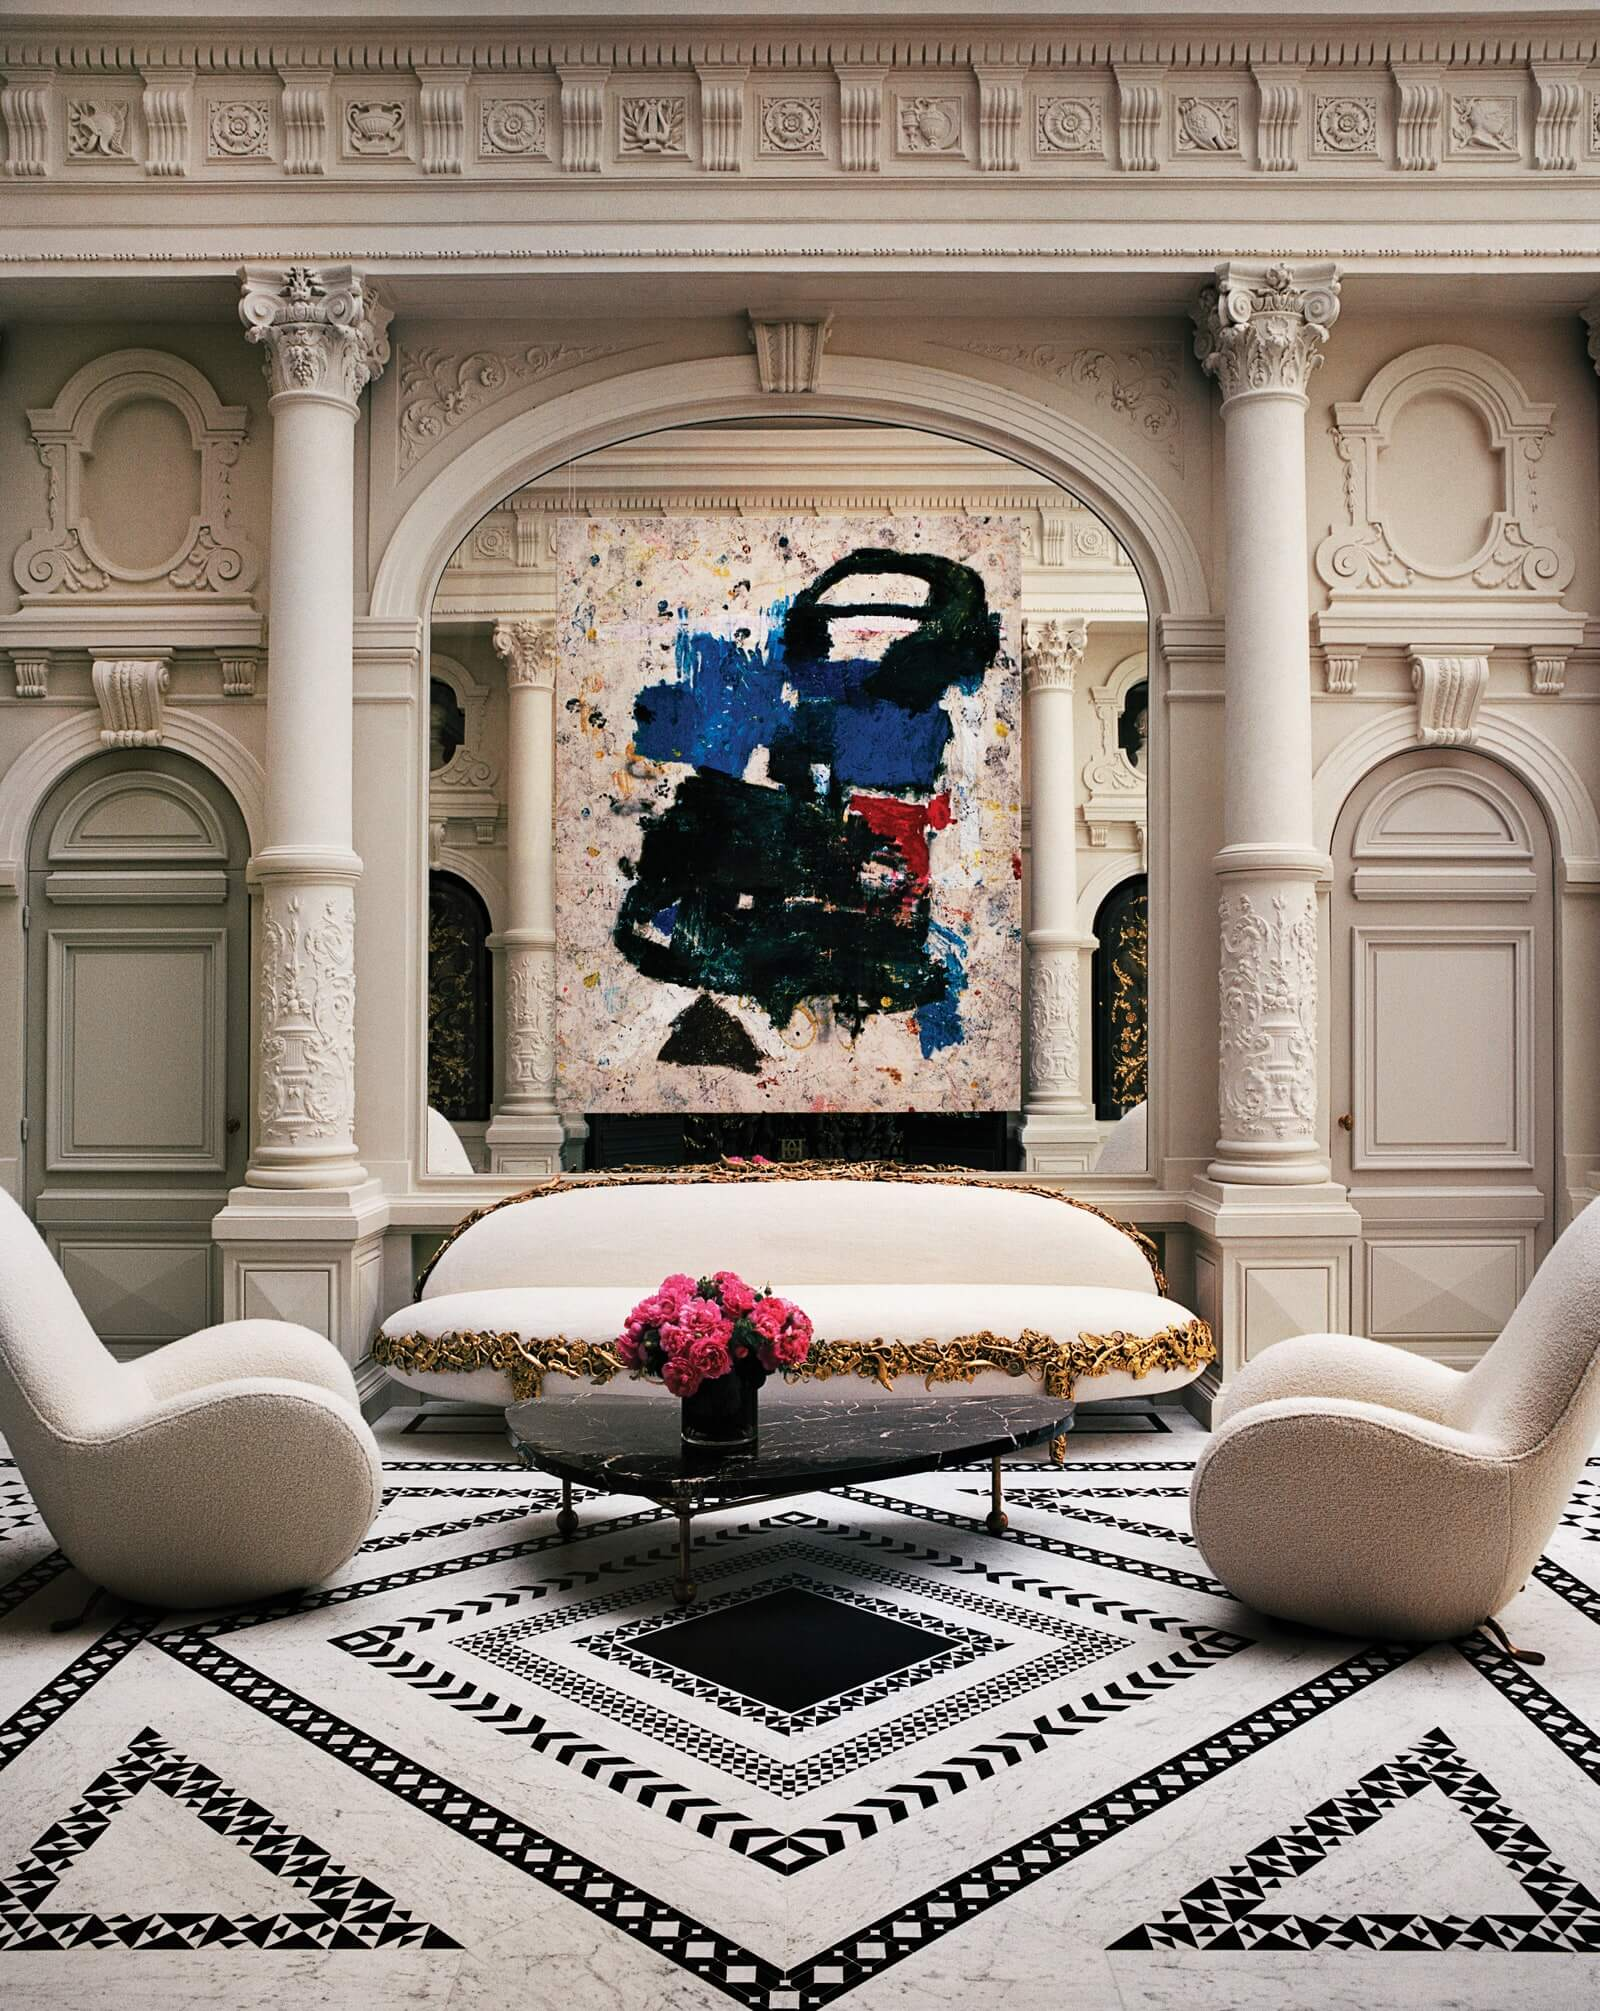 Inspiring Interior Design Projects To Discover In Paris (Part 1!) interior design project Inspiring Interior Design Projects To Discover In Paris (Part 1!) Mesmerizing Paris Mansion by Jacques Grange